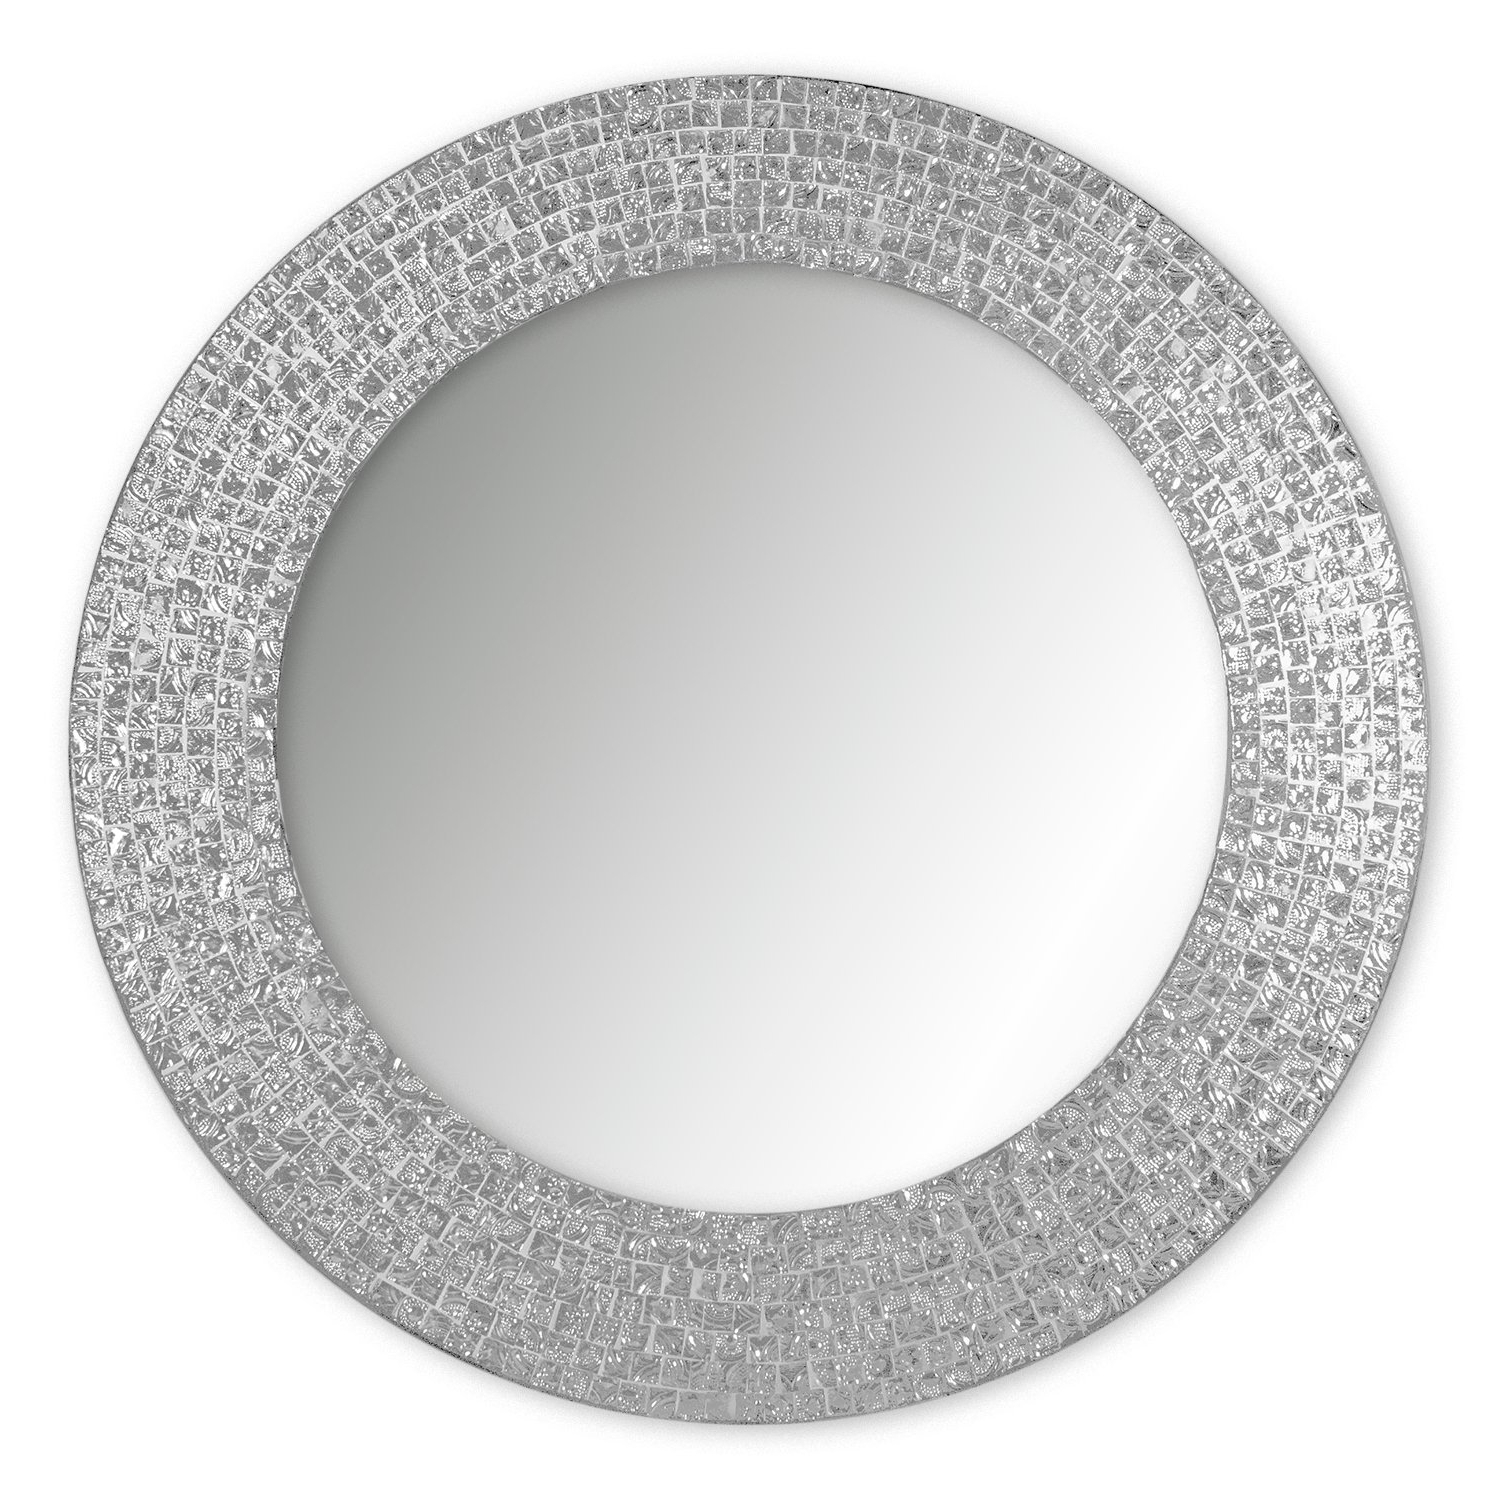 "Decorshore 20"" Jewel Tone Accent Mirror, Round Decorative Wall Mirror W/embossed Glass Mosaic Tile Frame (silver Topaz) Intended For Best And Newest Deniece Sunburst Round Wall Mirrors (View 20 of 20)"